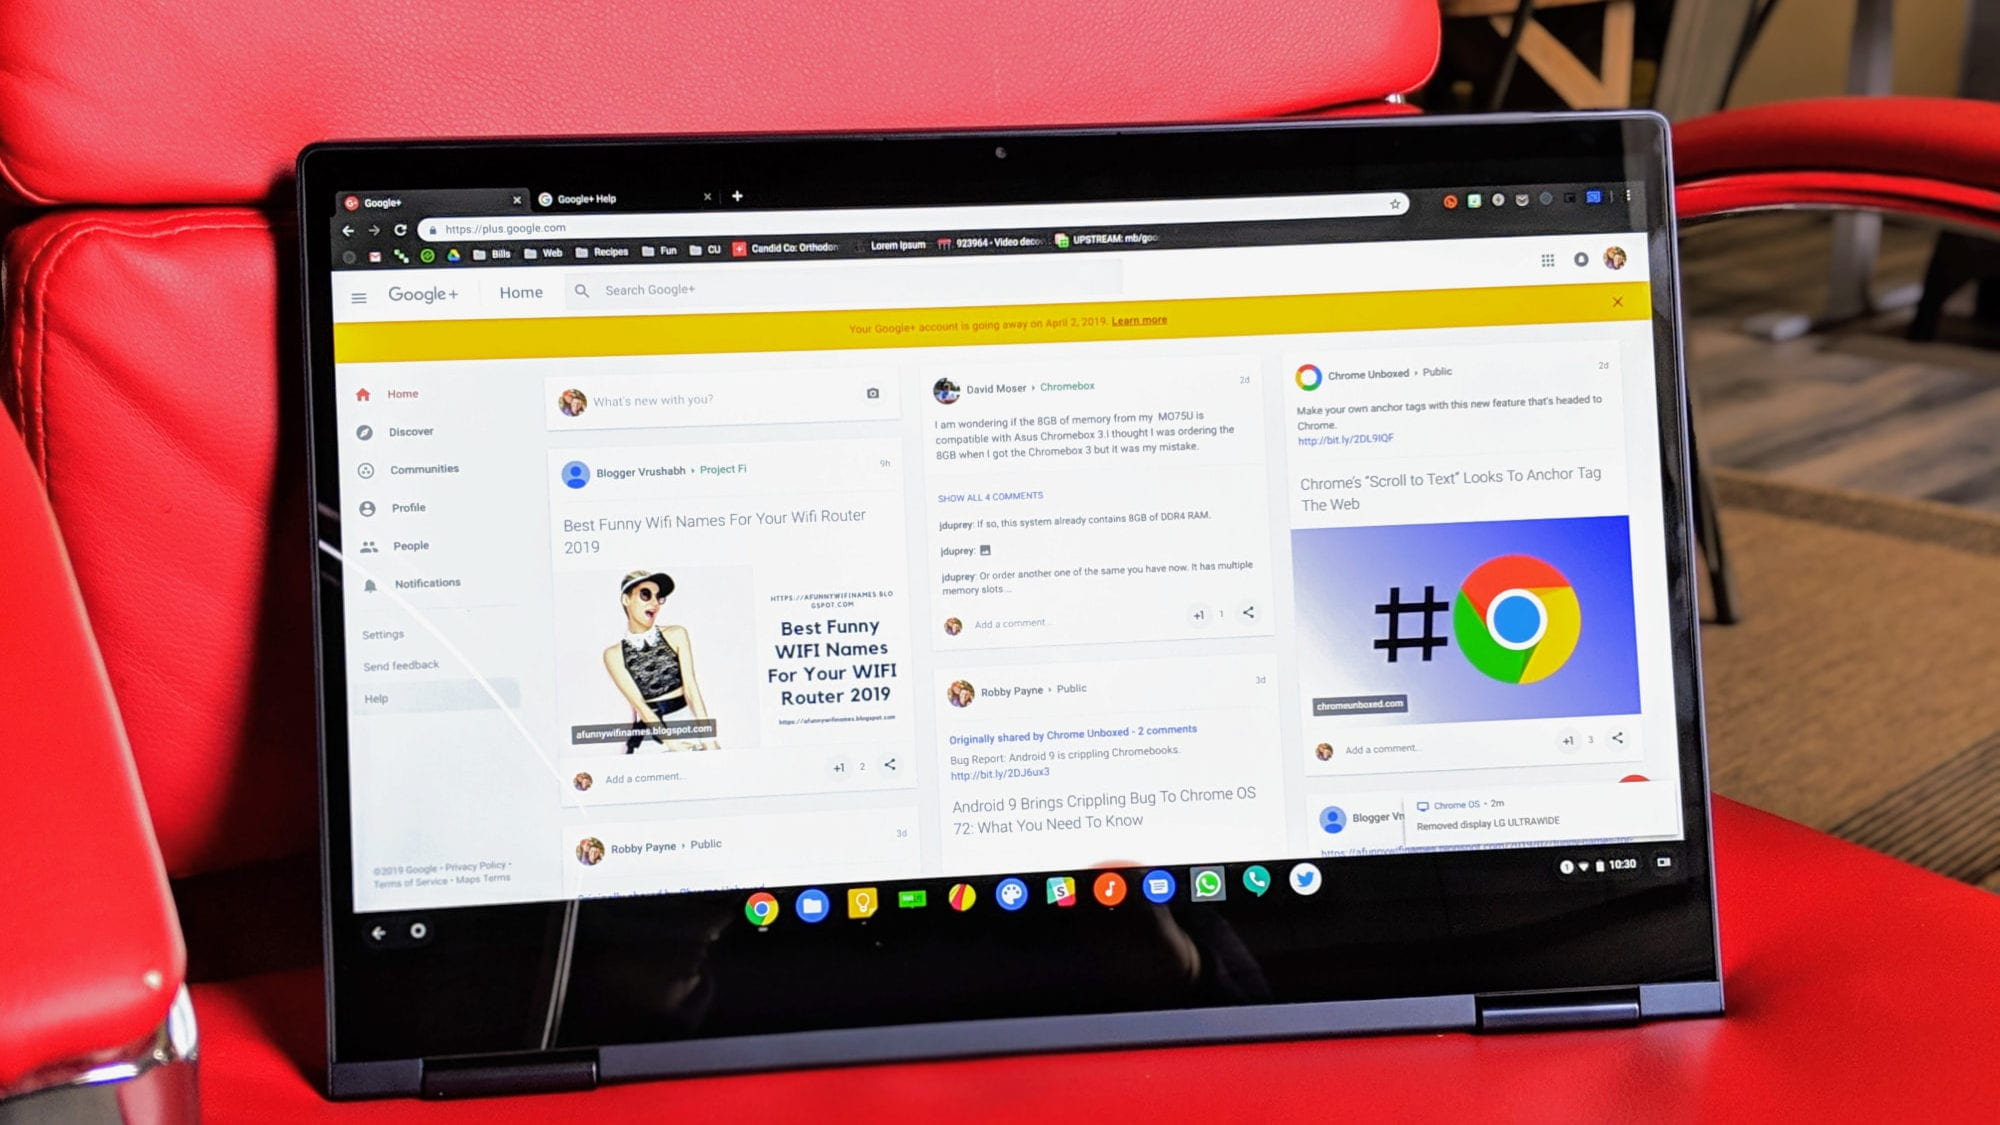 Is Your Google Account Going Away? No, But Your Google+ Account Is